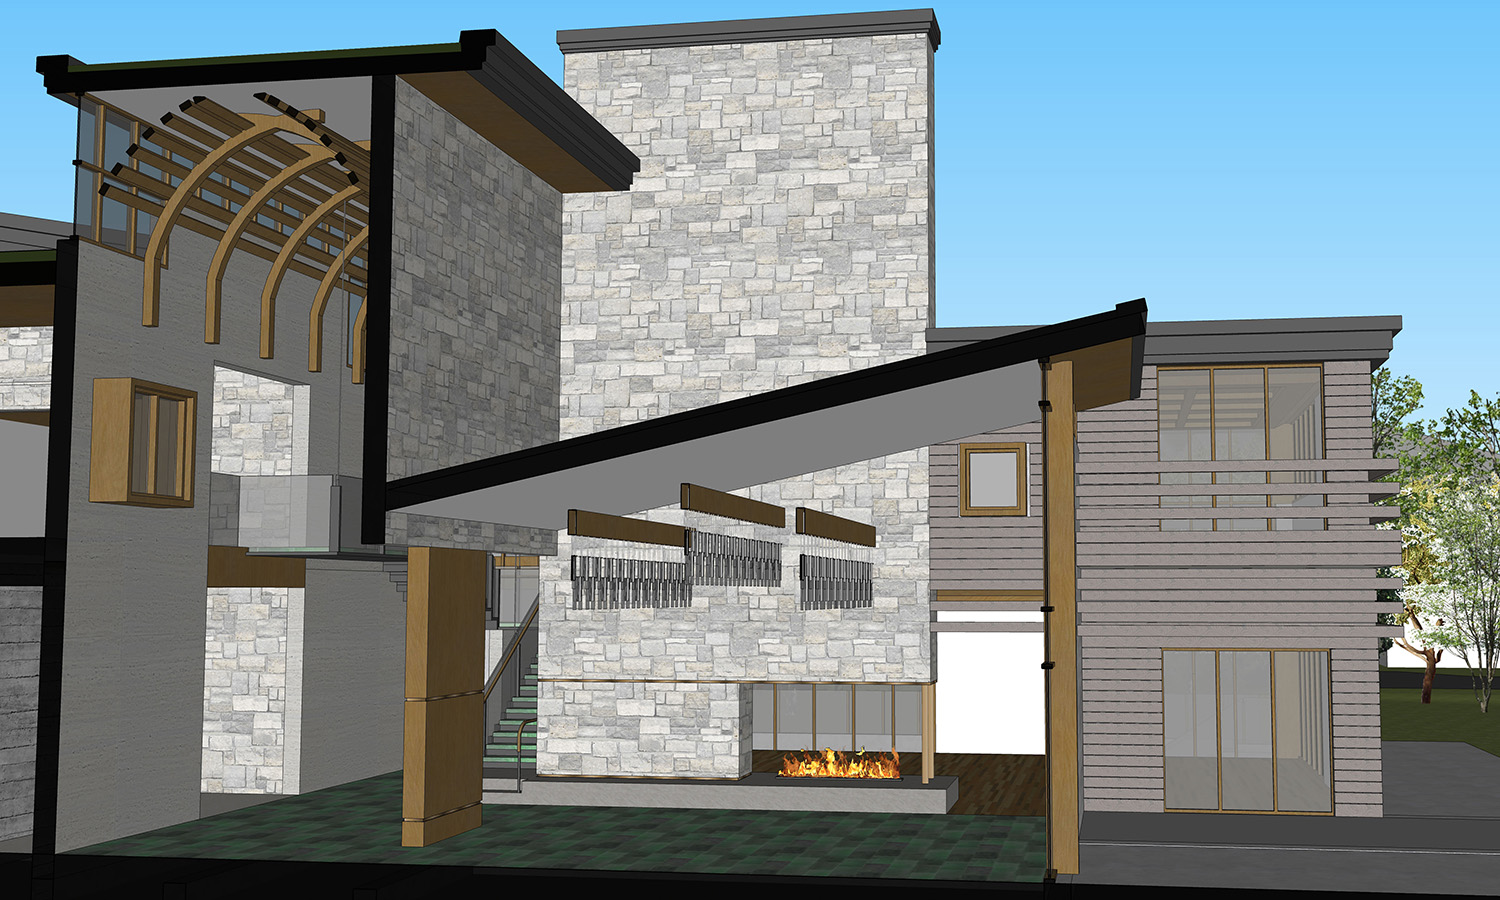 Official wing cross section through the multi-storey entry hall and reception hall